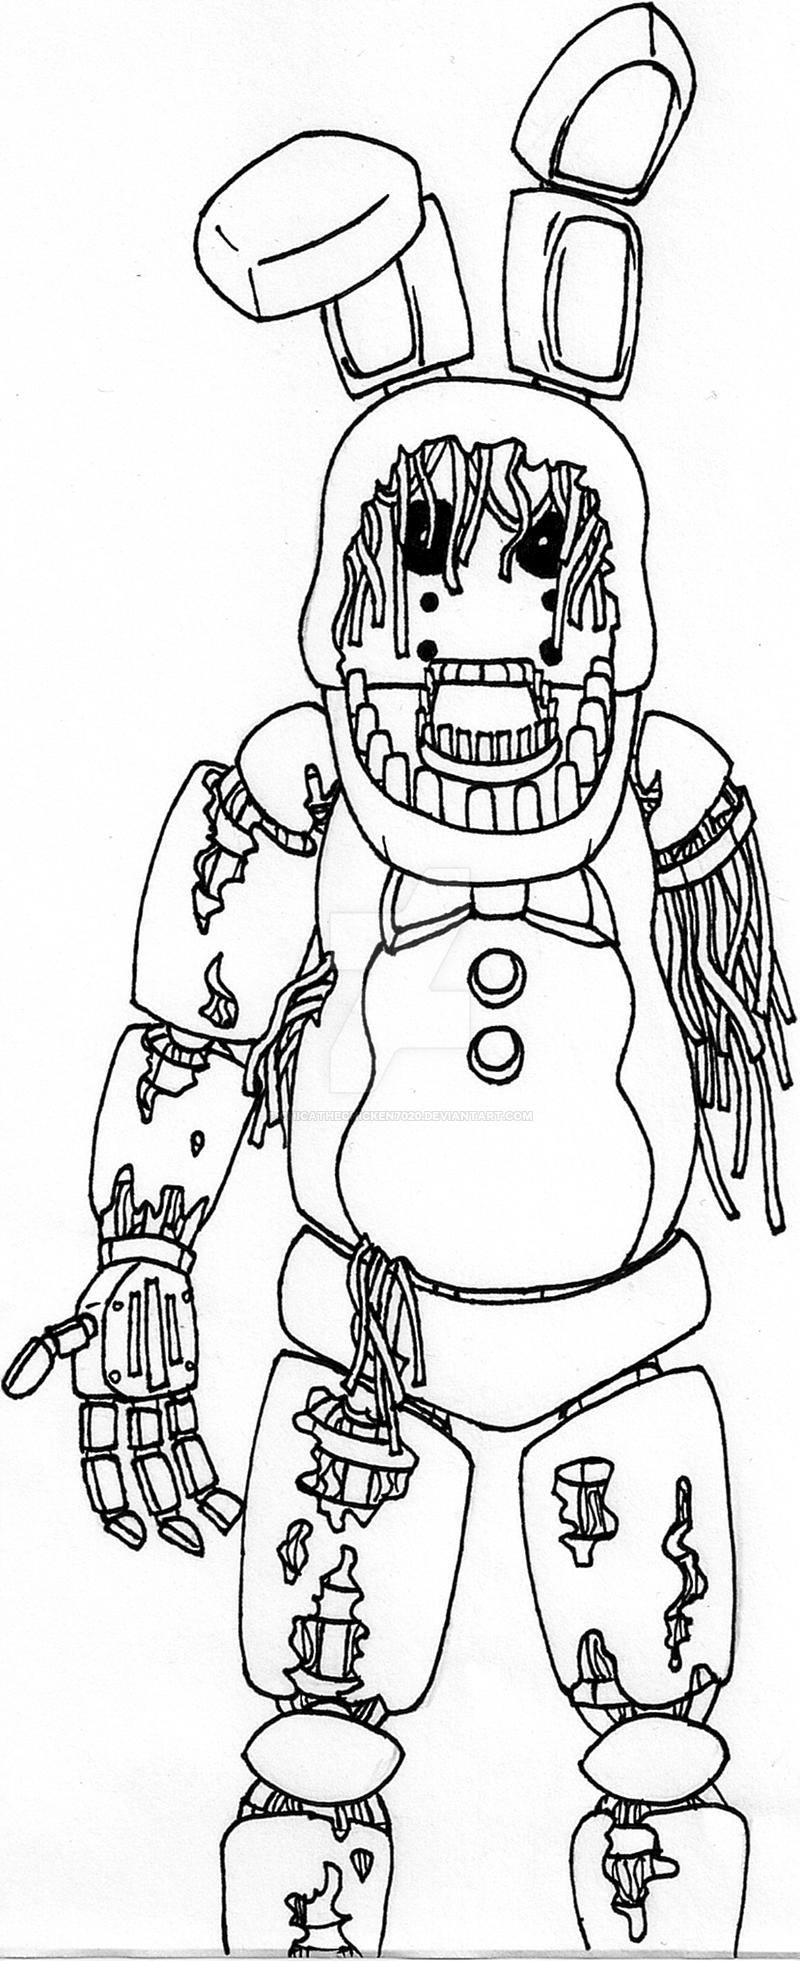 fnaf 3 coloring pages - photo#8